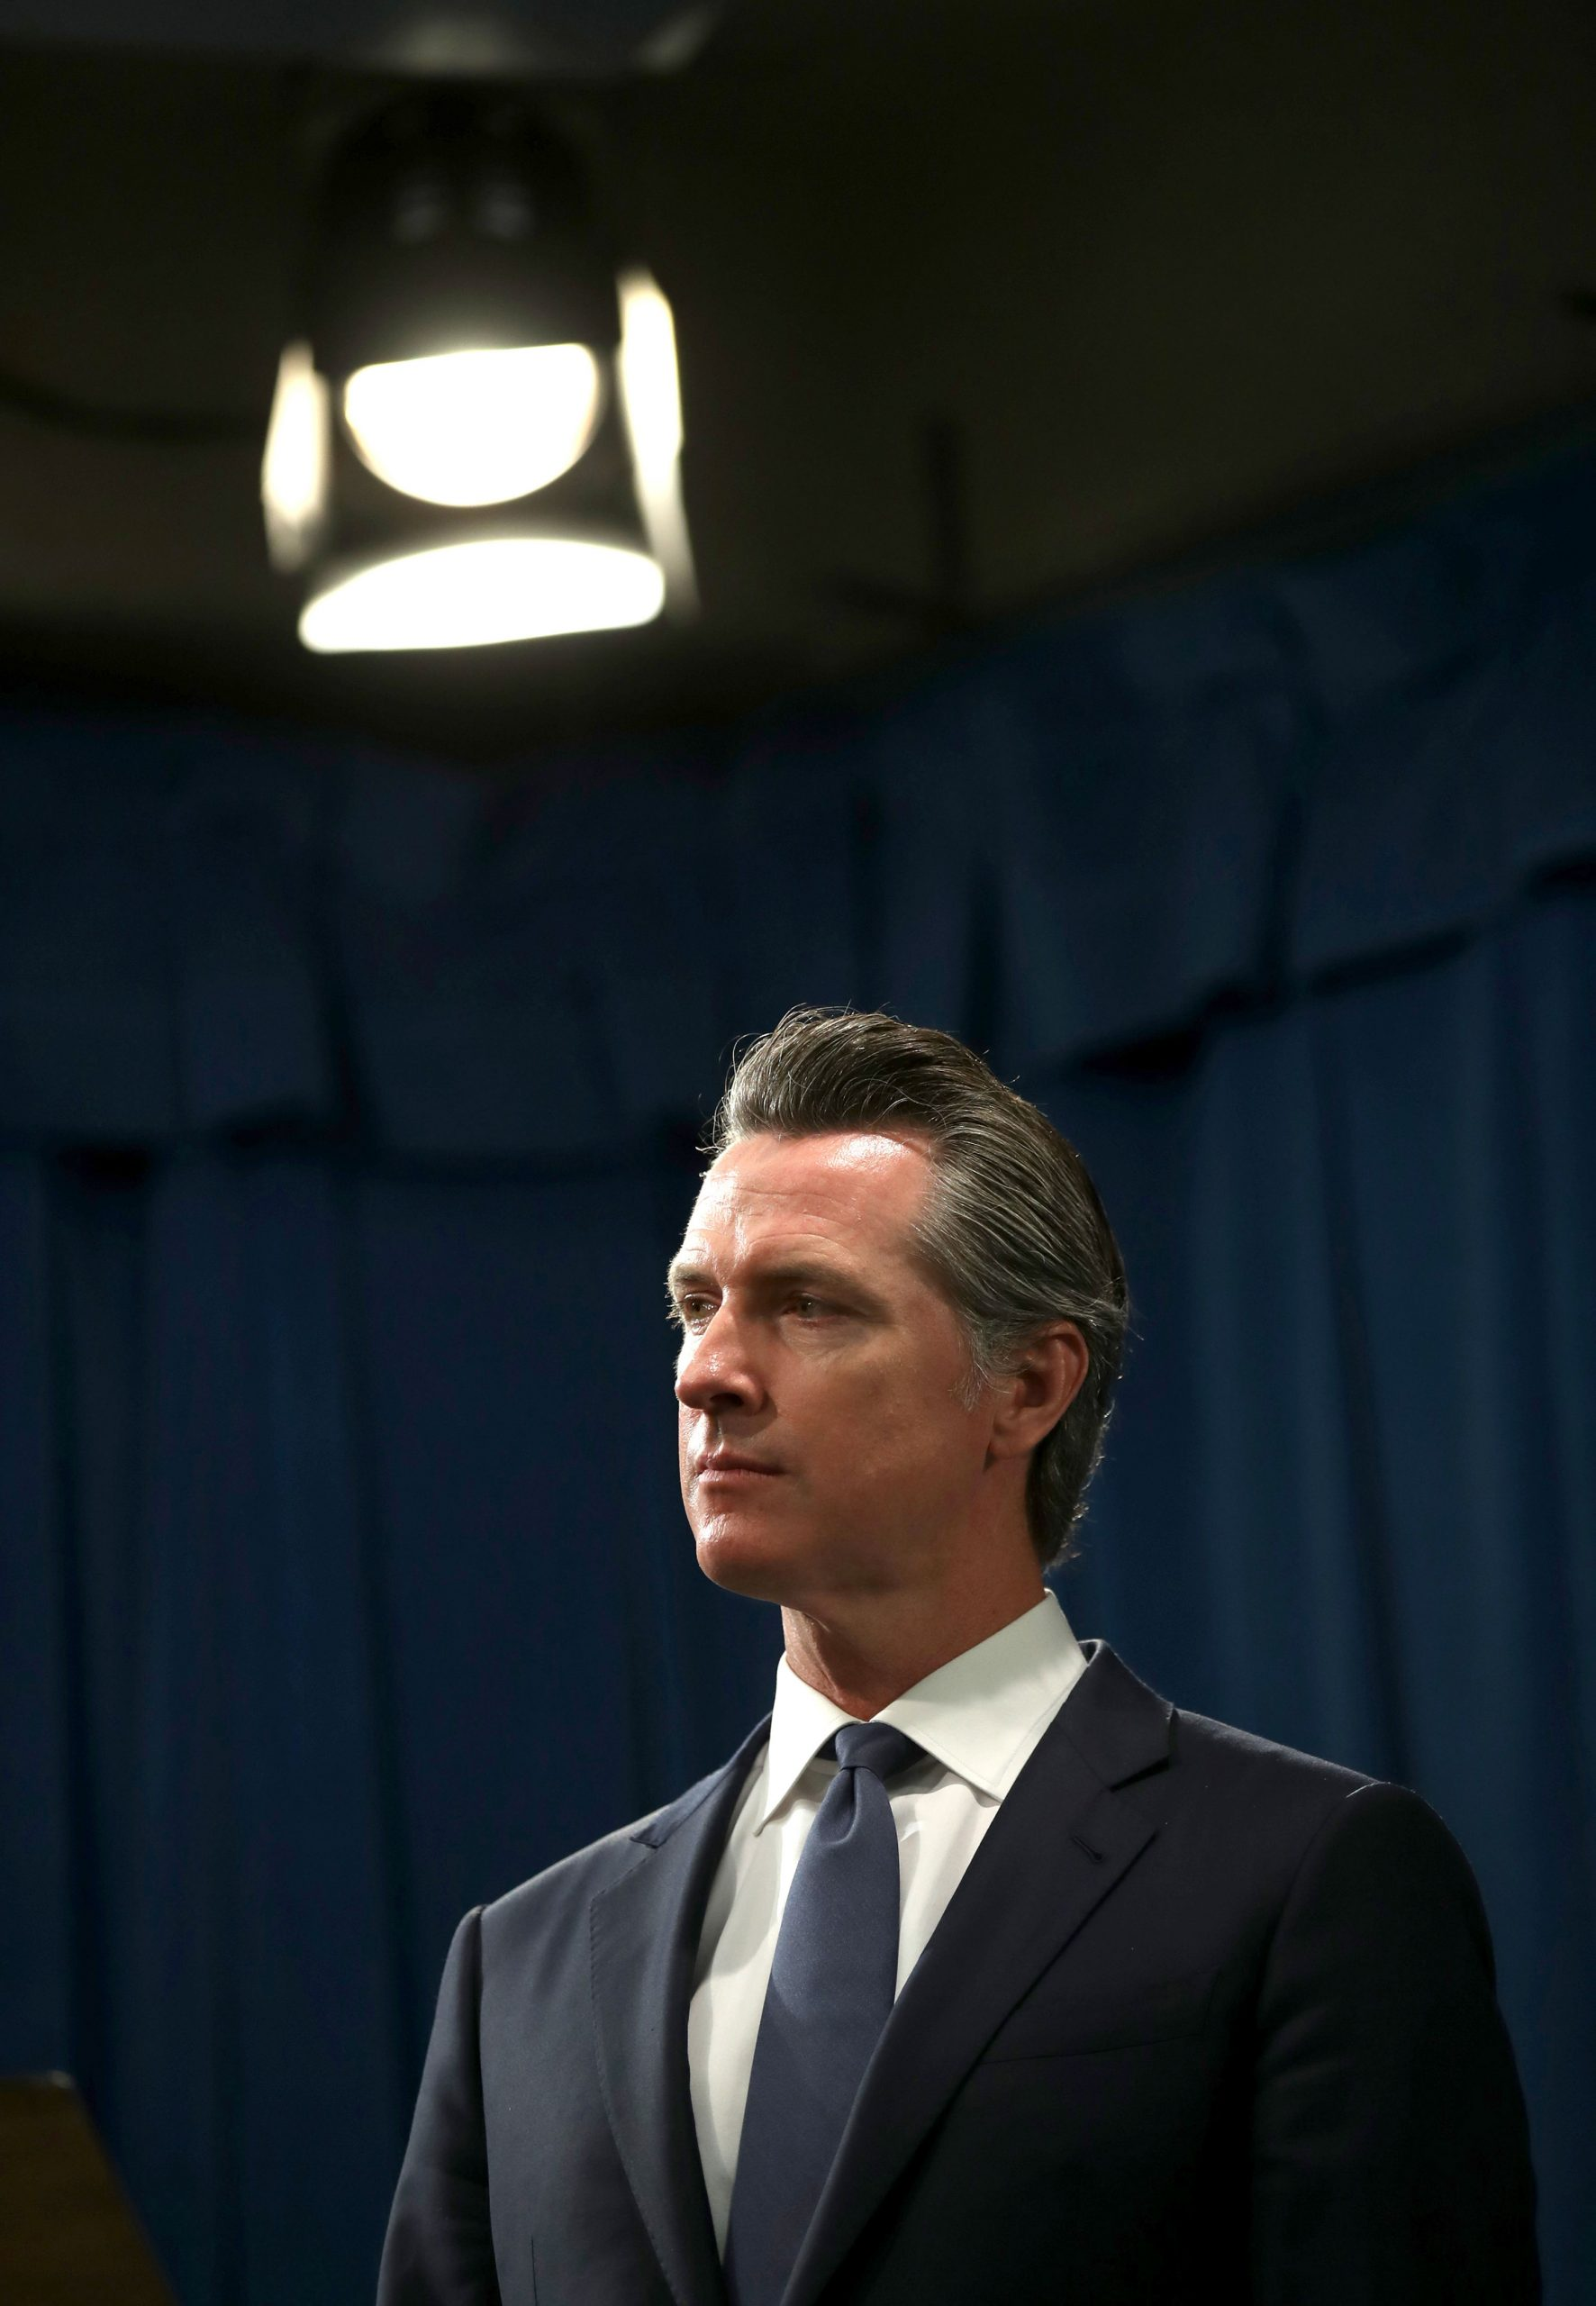 California Democratic Gov. Gavin Newsom will face a recall election, marking just the second time in state history that a special election will be held to recall a sitting governor.